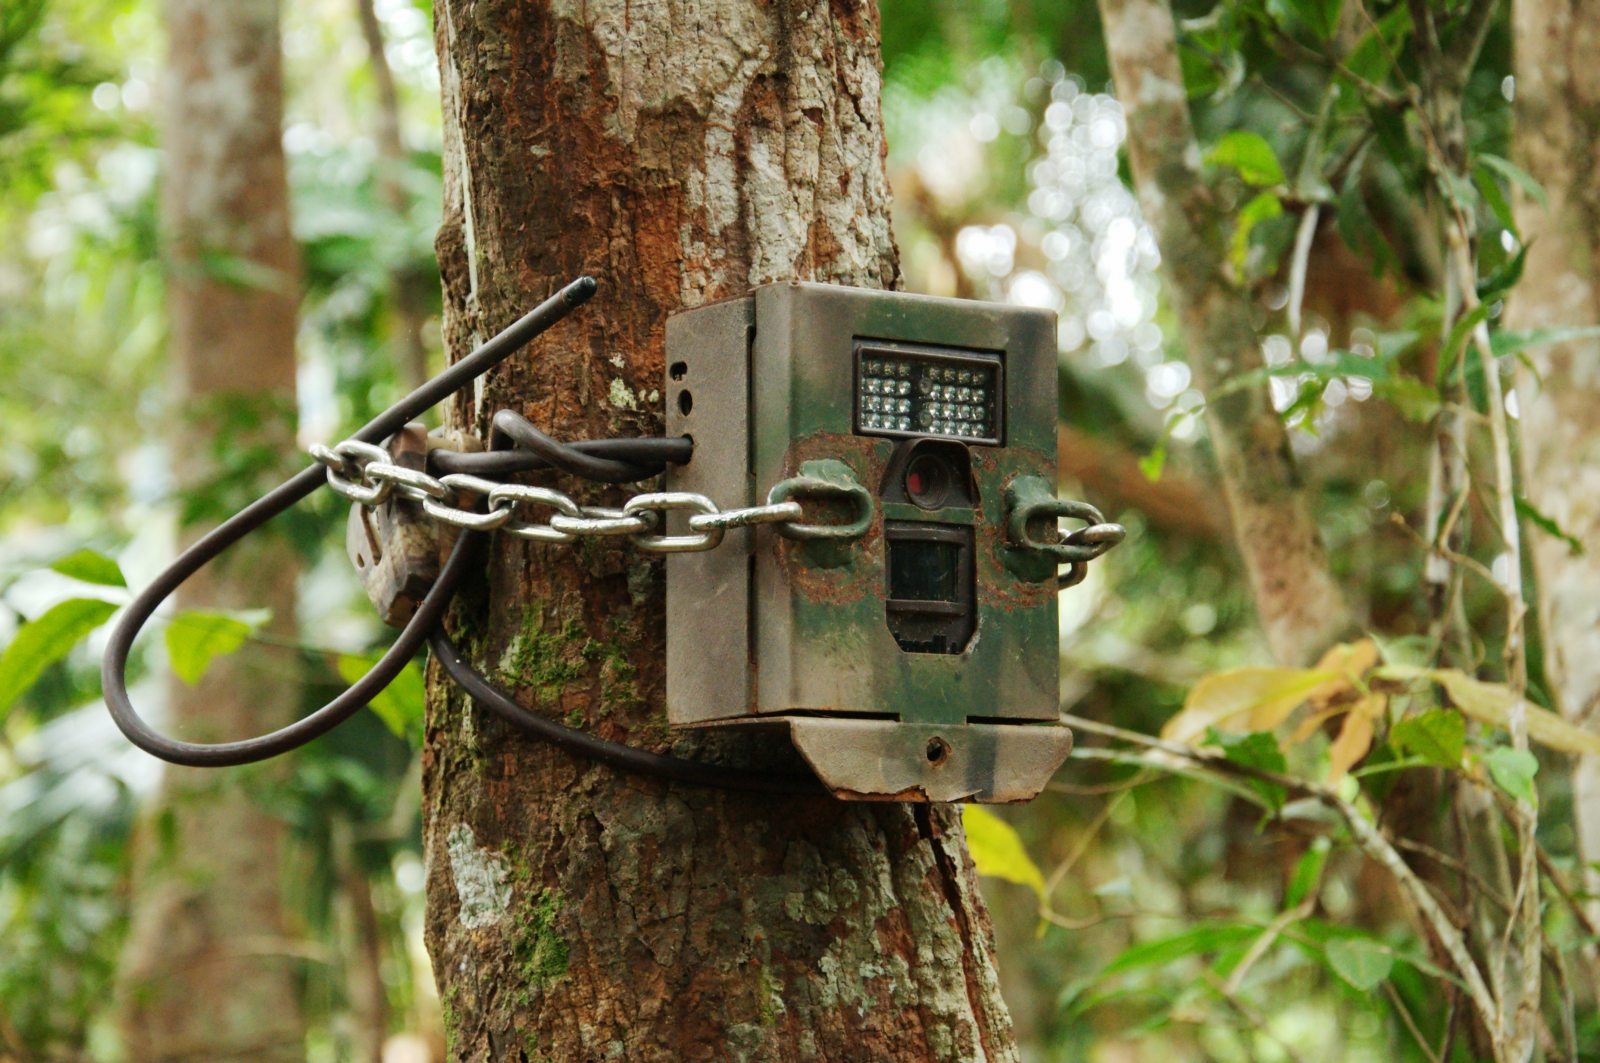 A camouflaged camera trap